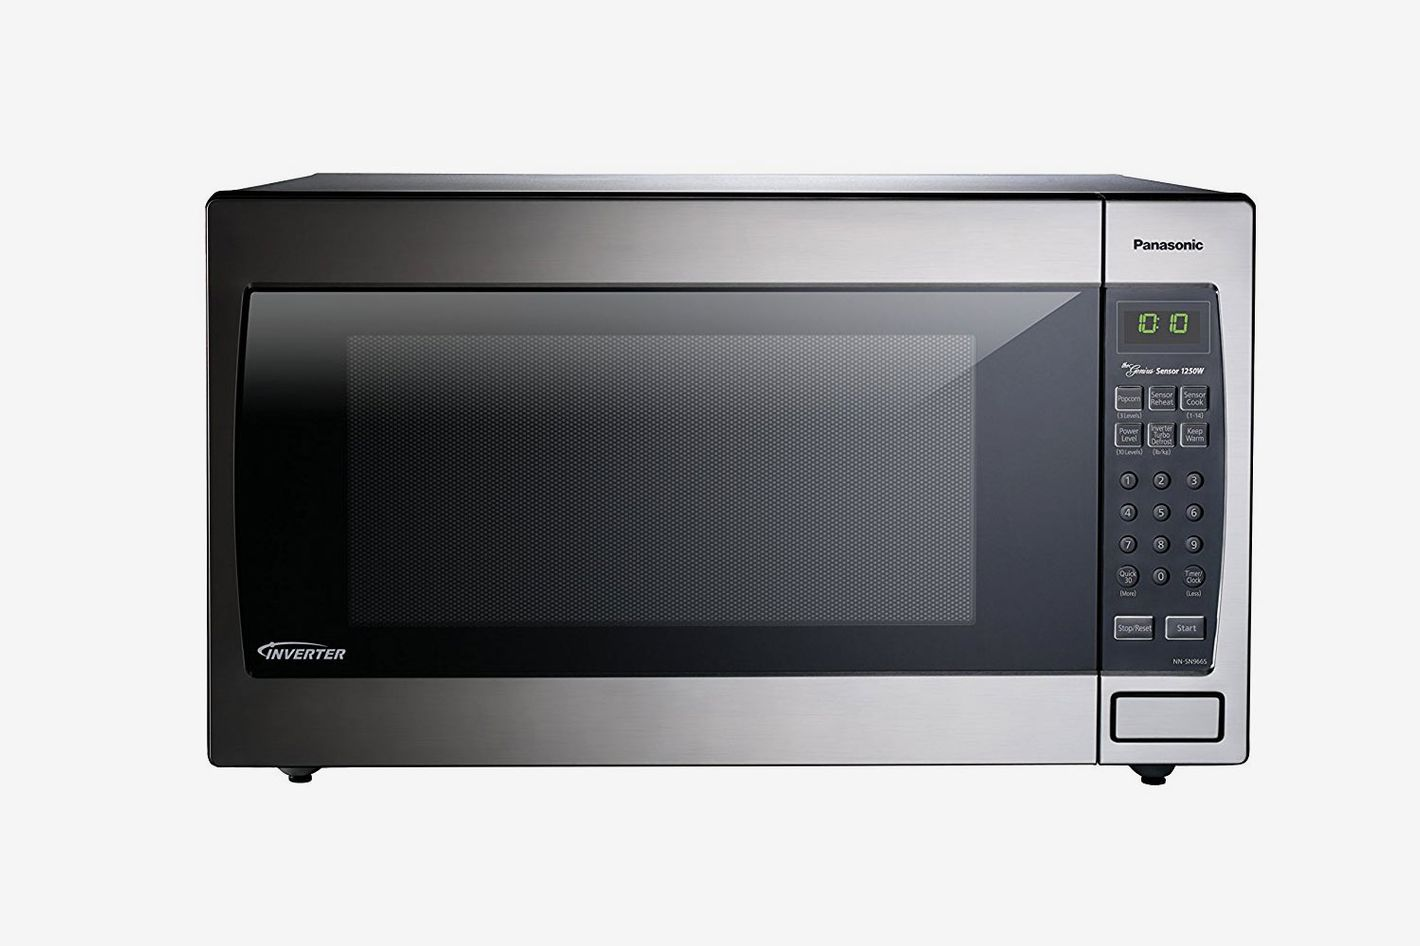 Panasonic Nn Sn966s Microwave Oven Strategist Best Smart Kitchen Liances